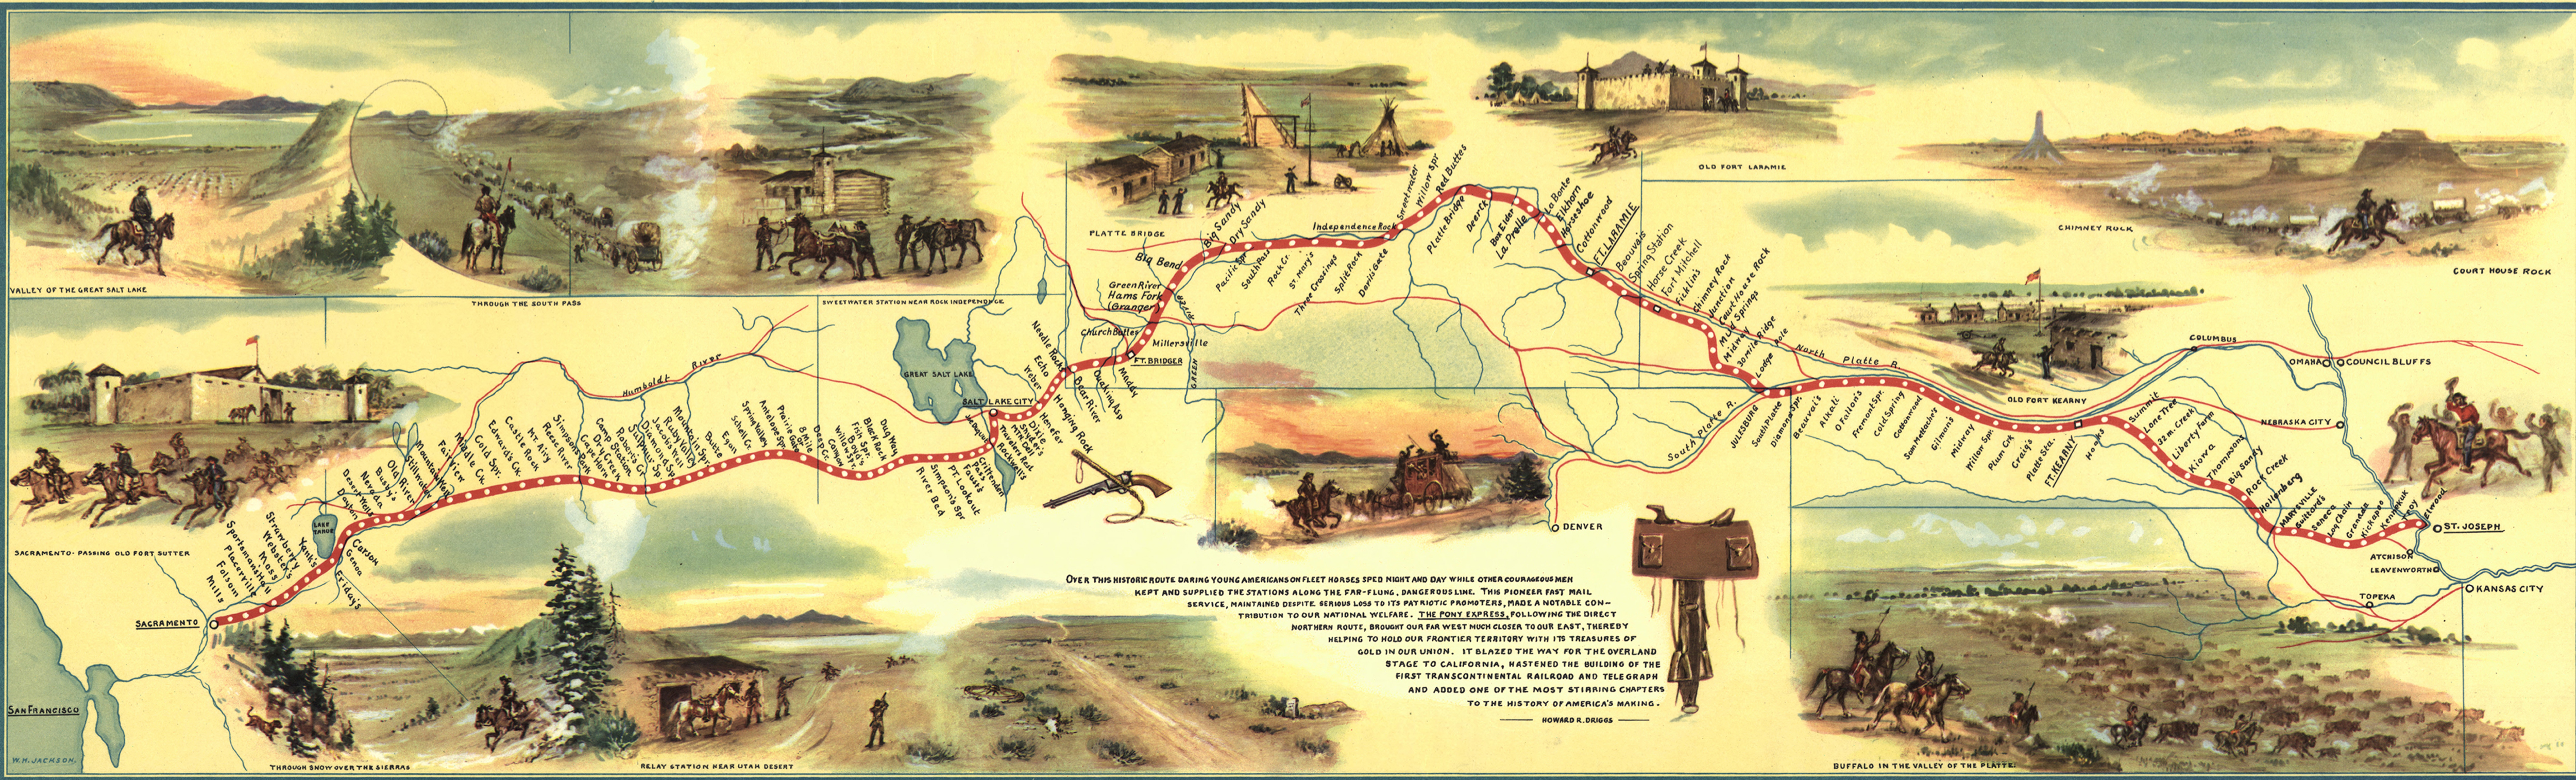 10 things you may not know about the pony express history lists